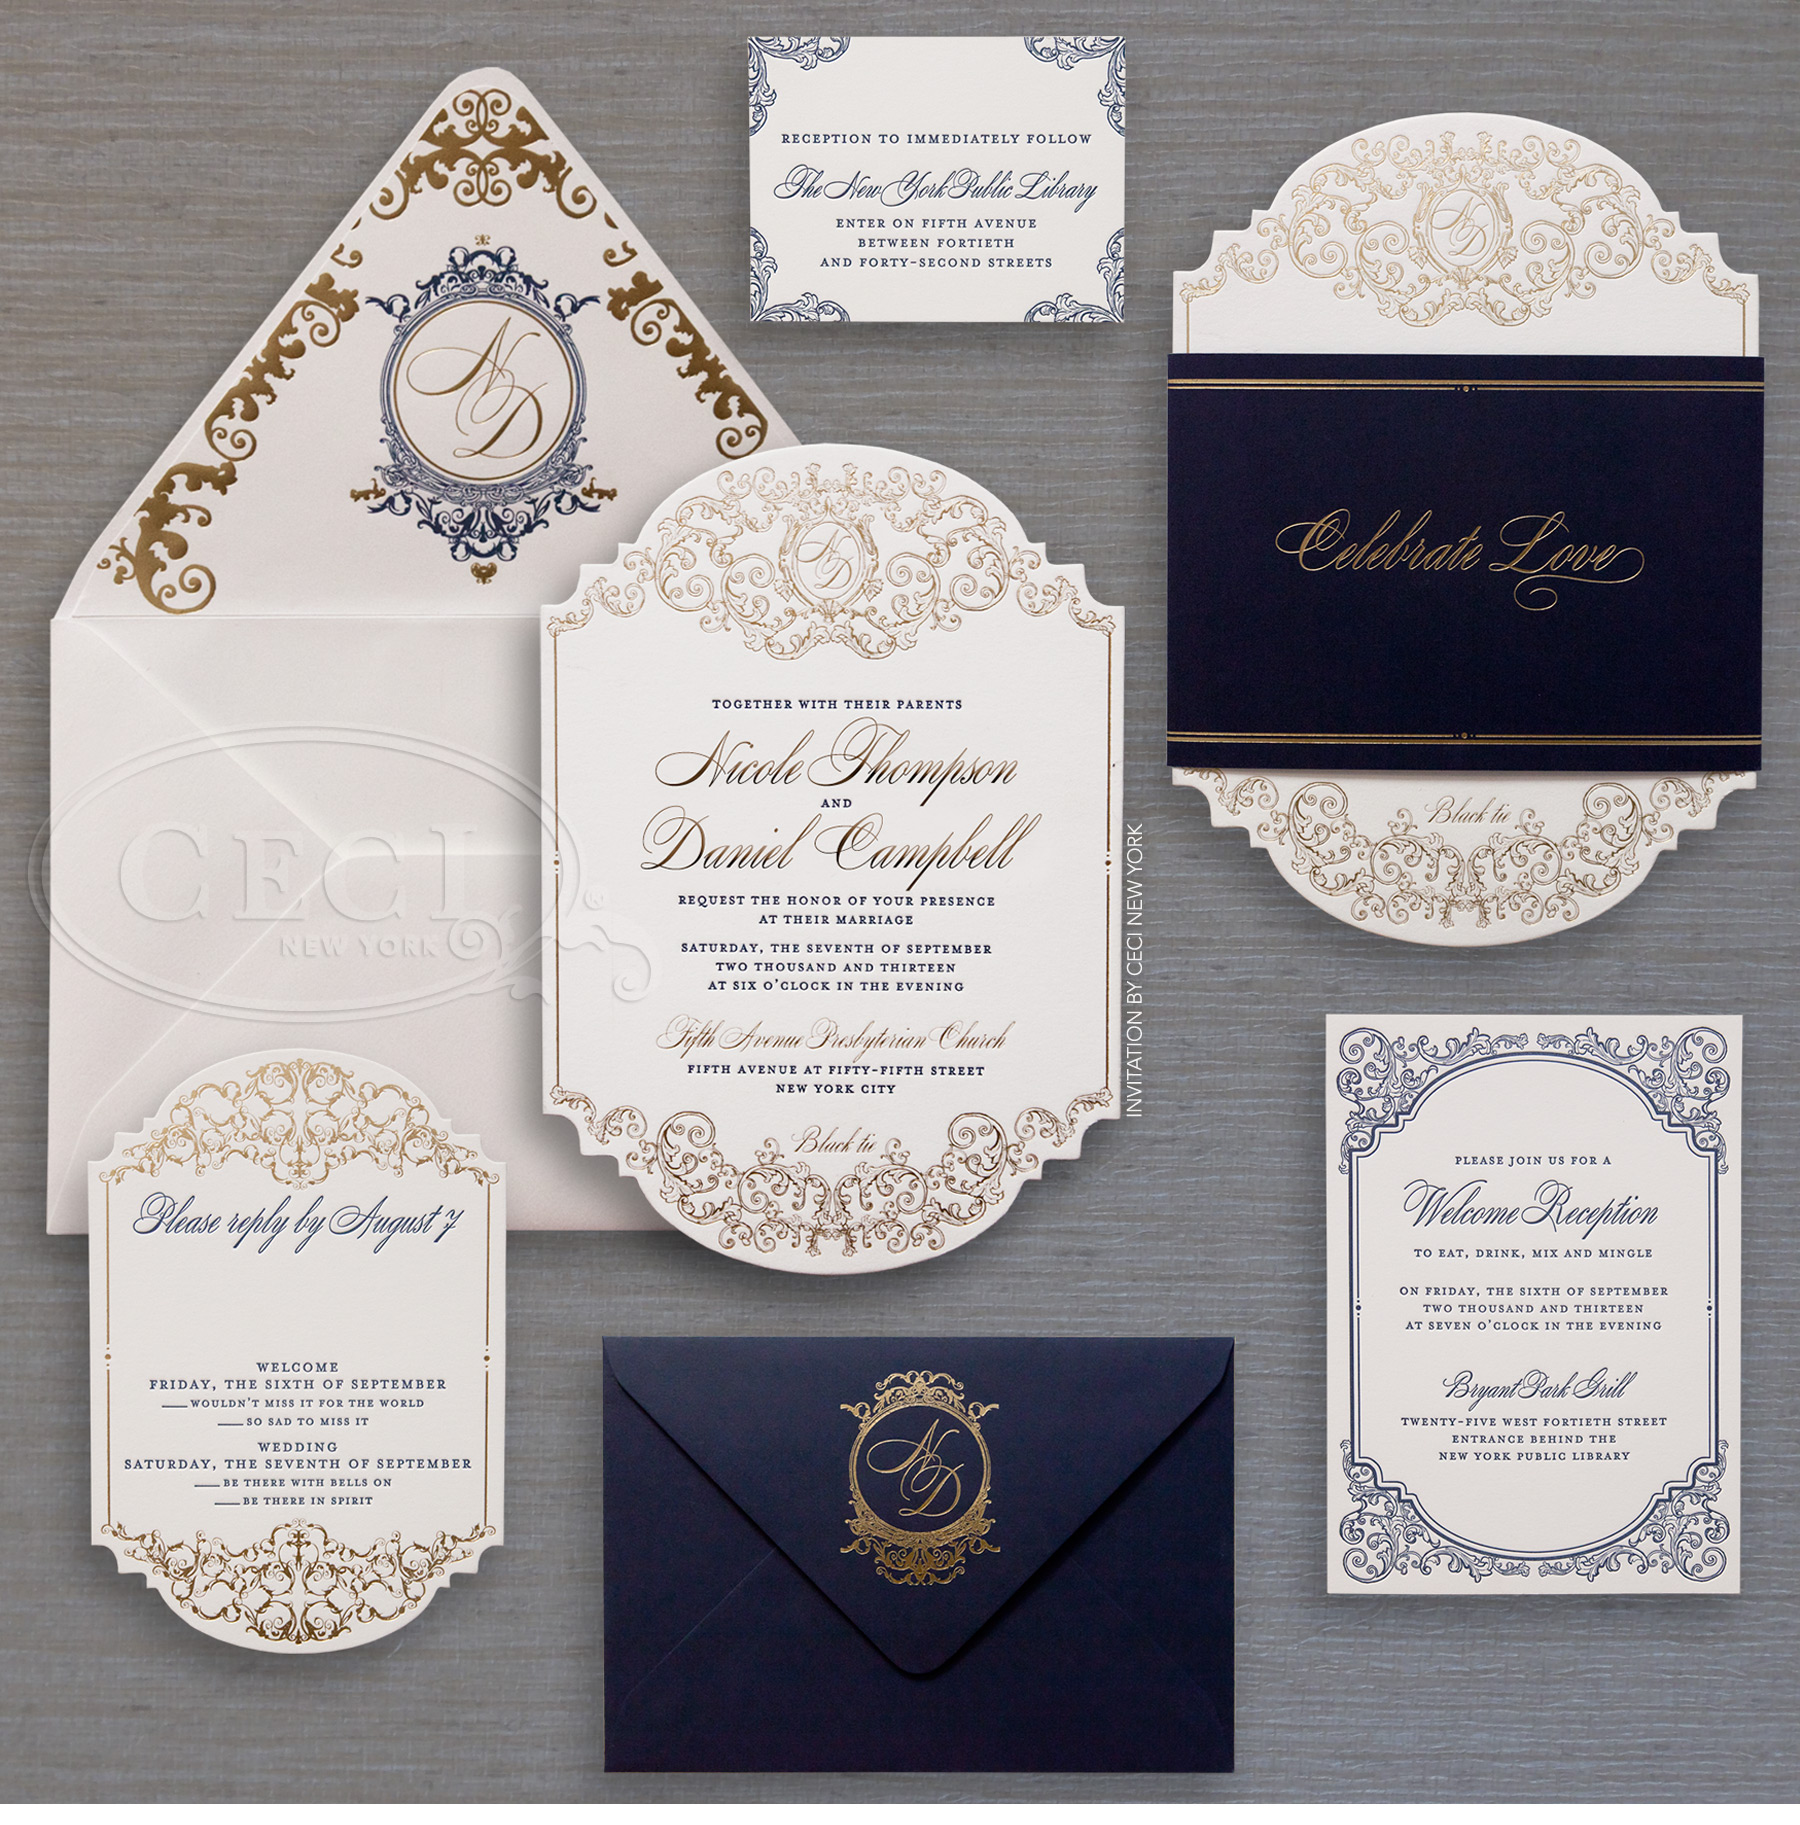 Ceci New York Wedding Invitations with good invitation sample